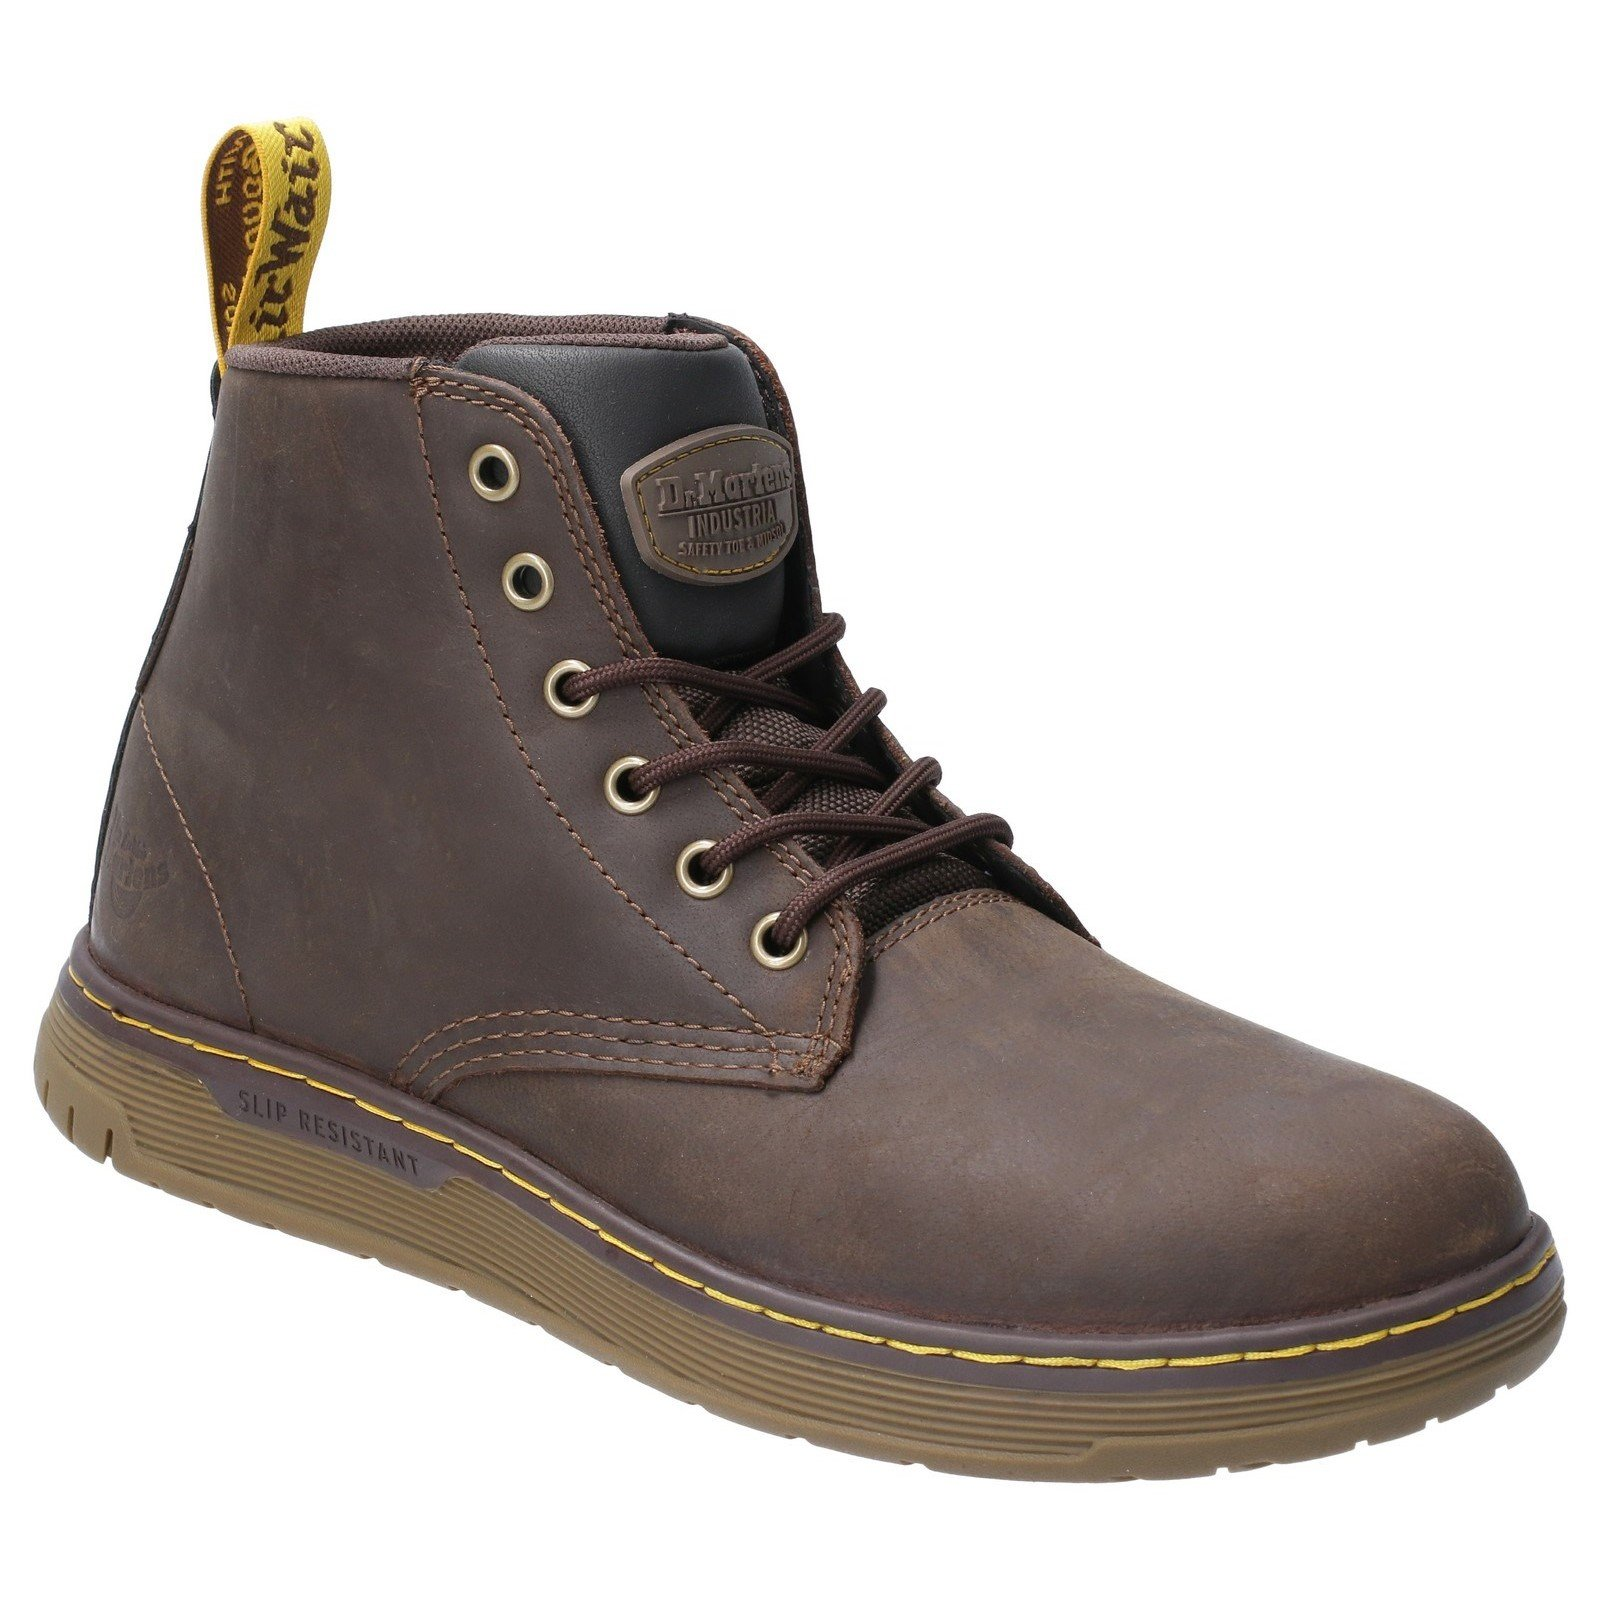 Dr Martens Unisex Ledger Lace Up Safety Boot Brown 29501 - Brown 7